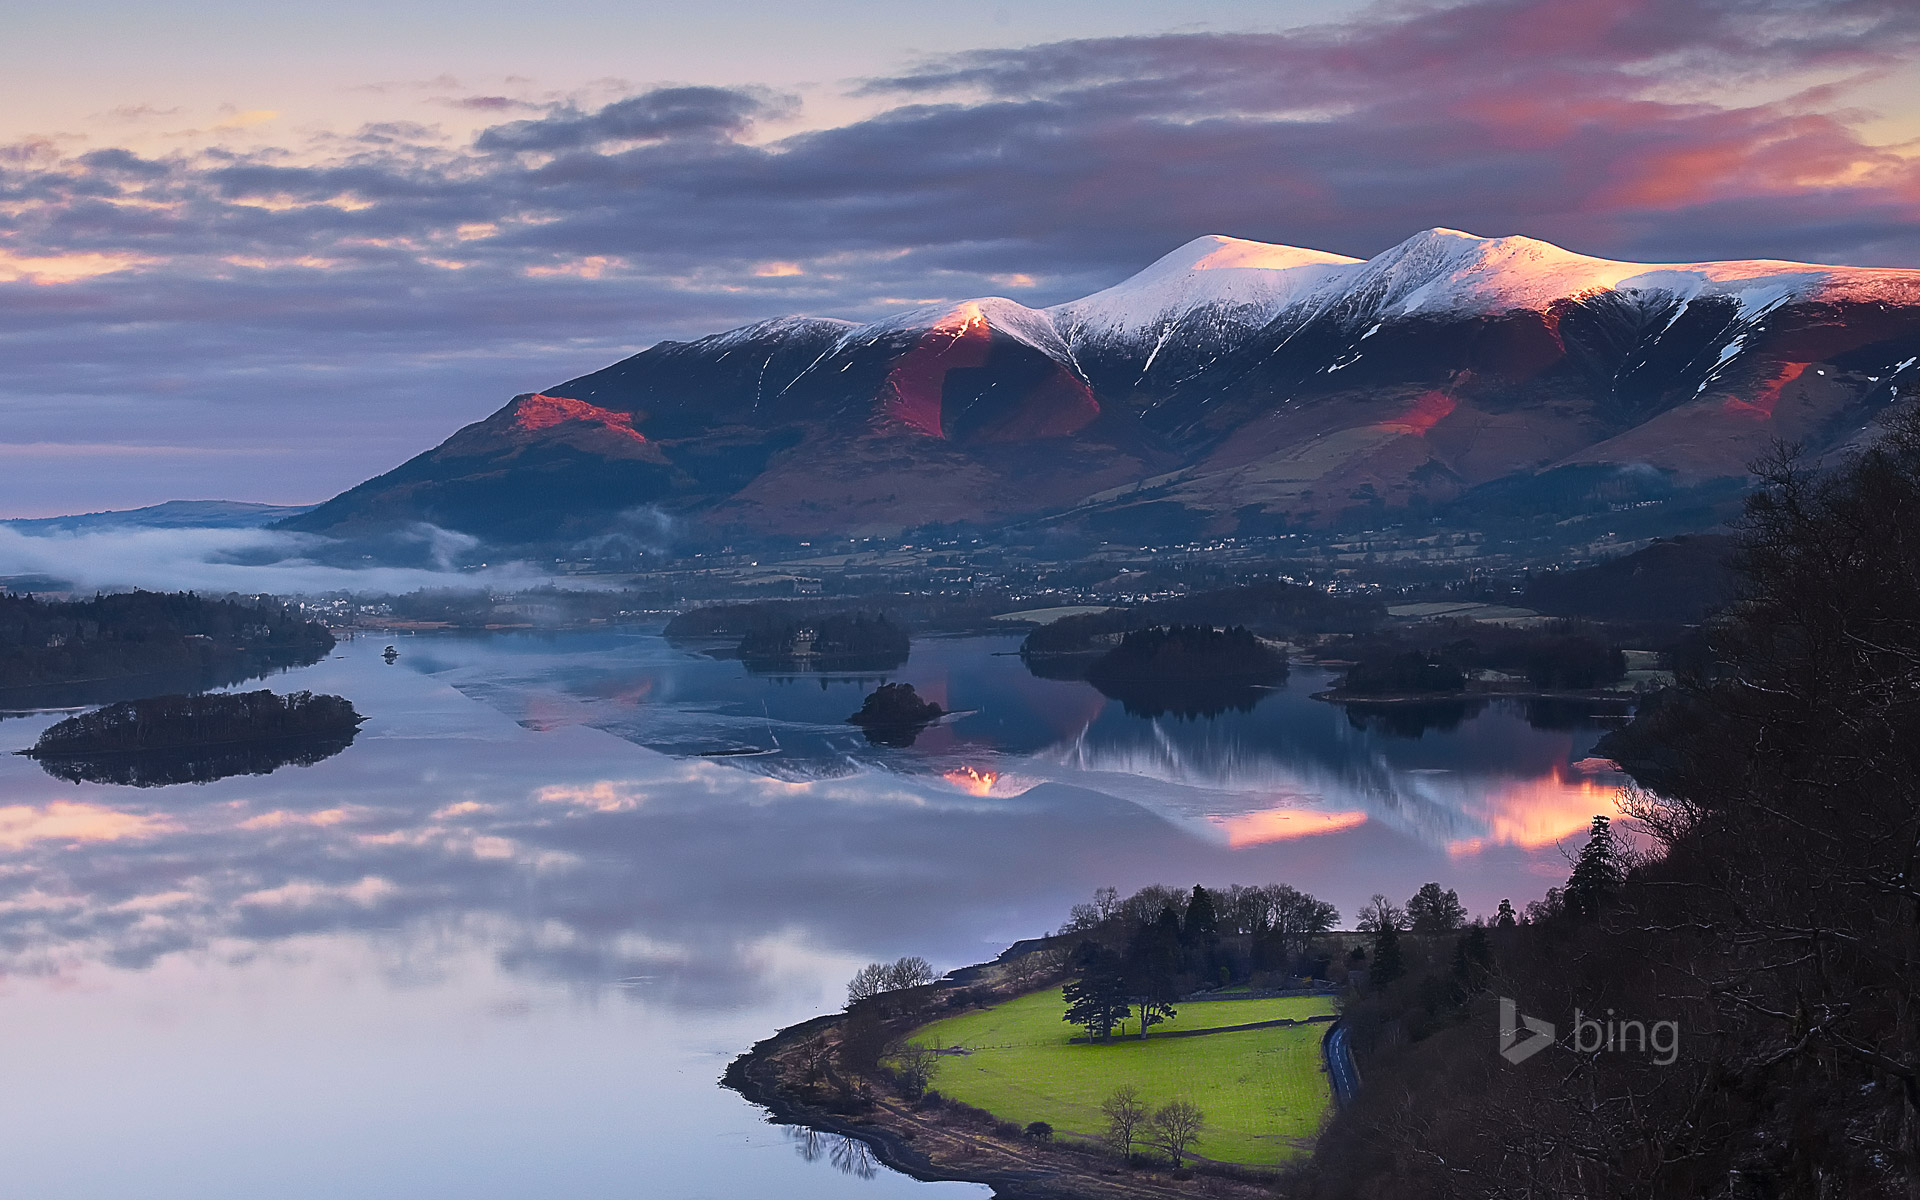 Sun rising over Skiddaw Mountain and Derwentwater in Cumbria, England